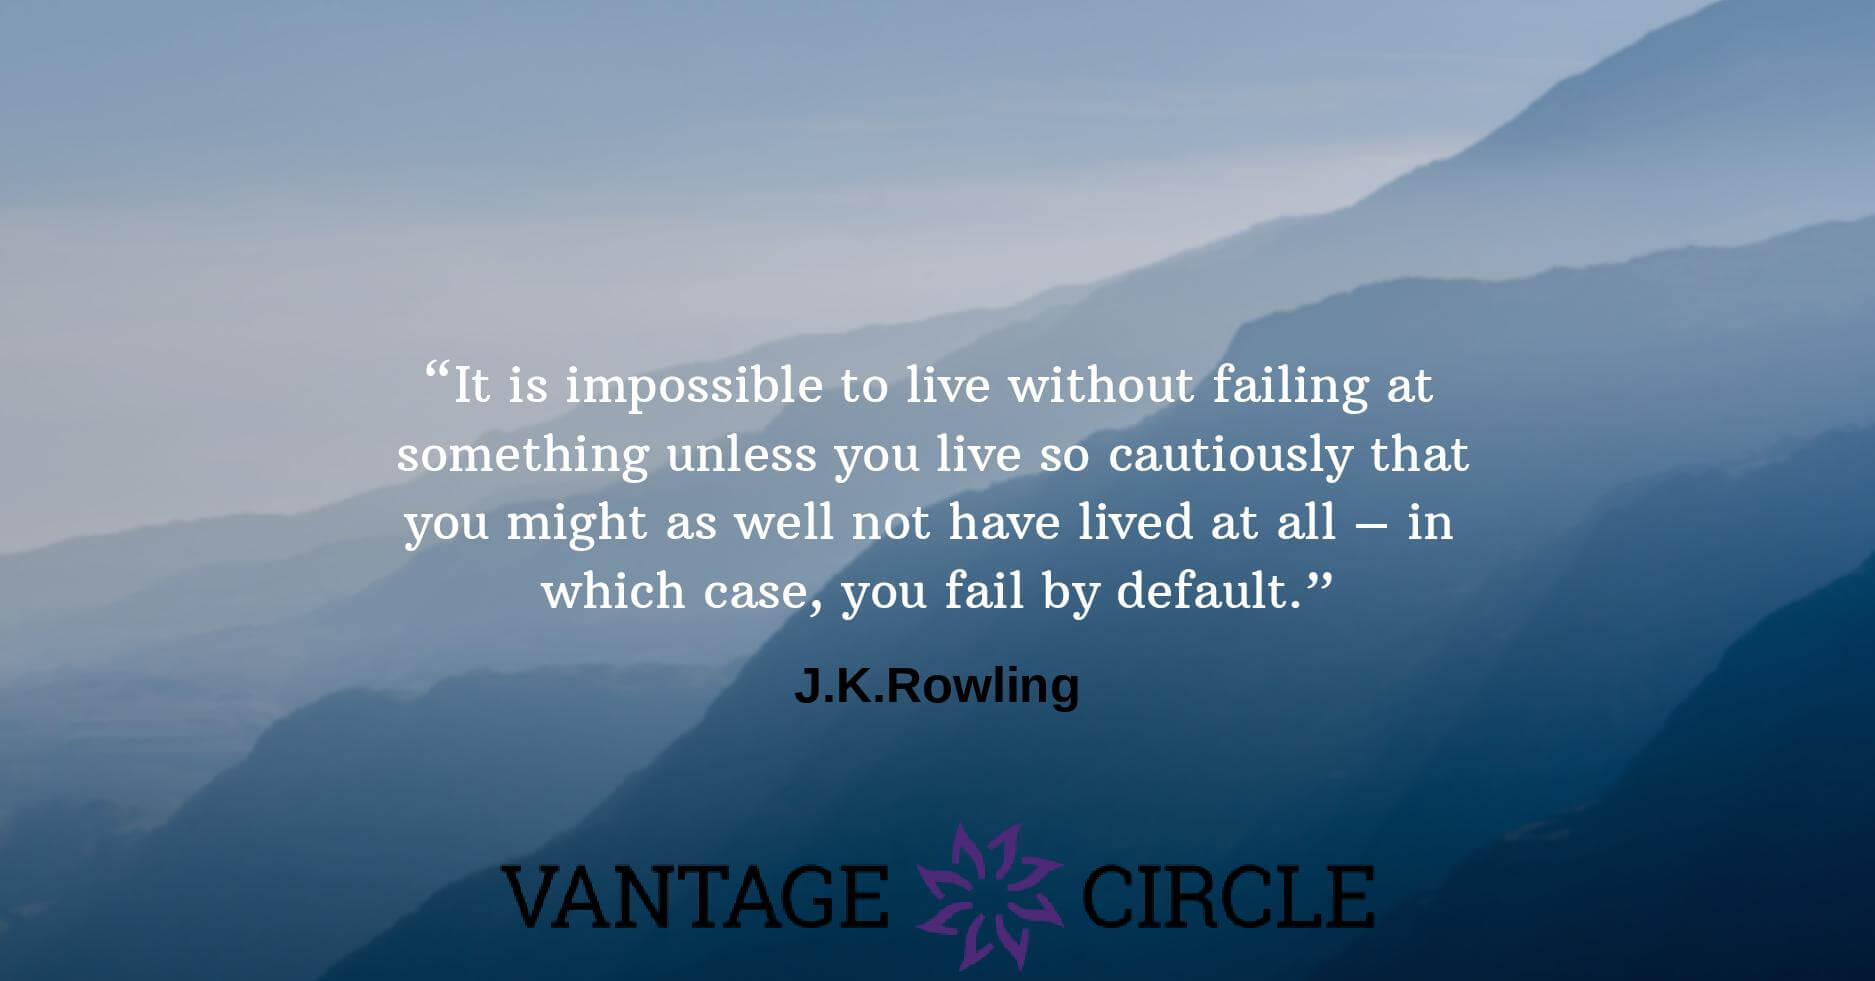 Employee-motivational-quotes-JK-Rowling